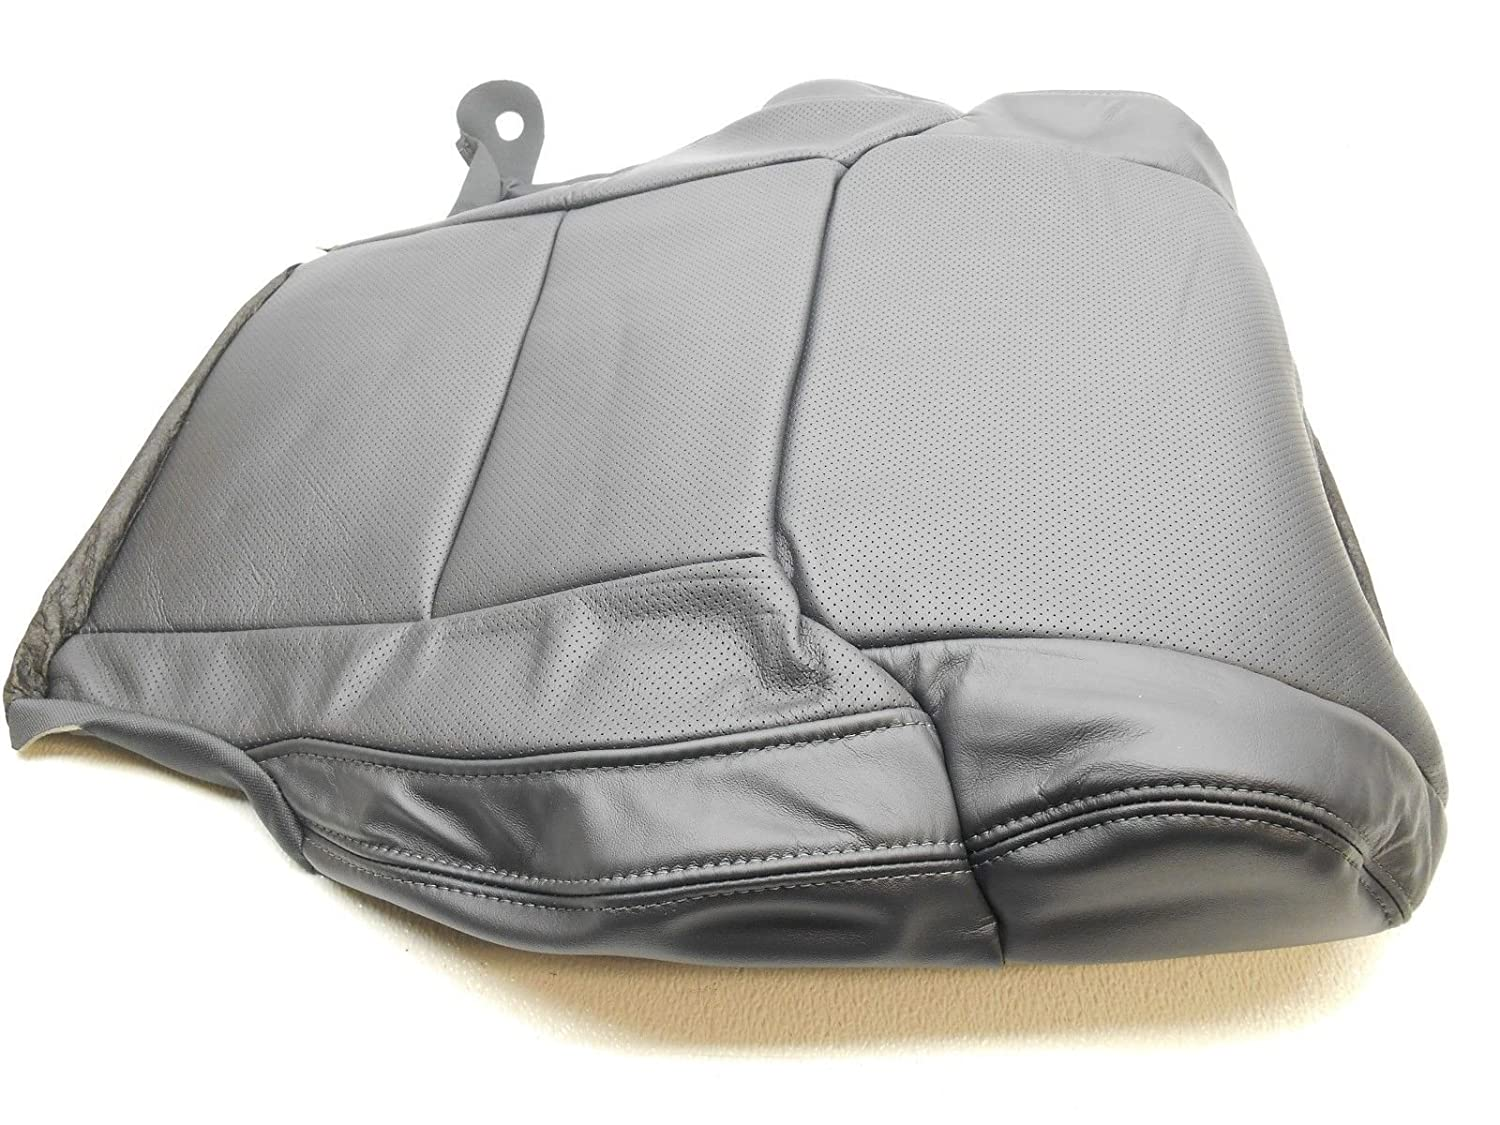 TOYOTA Genuine 71071-0C810-C0 Seat Cushion Cover